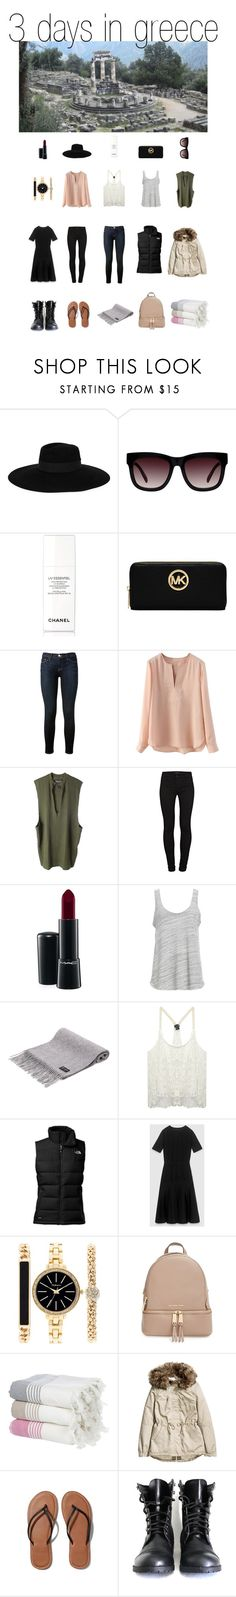 """""""3 Days in Greece"""" by emibrutus ❤ liked on Polyvore featuring Maison Michel, Chanel, Michael Kors, Frame Denim, adidas Originals, J Brand, MAC Cosmetics, Project Social T, Wet Seal and The North Face"""